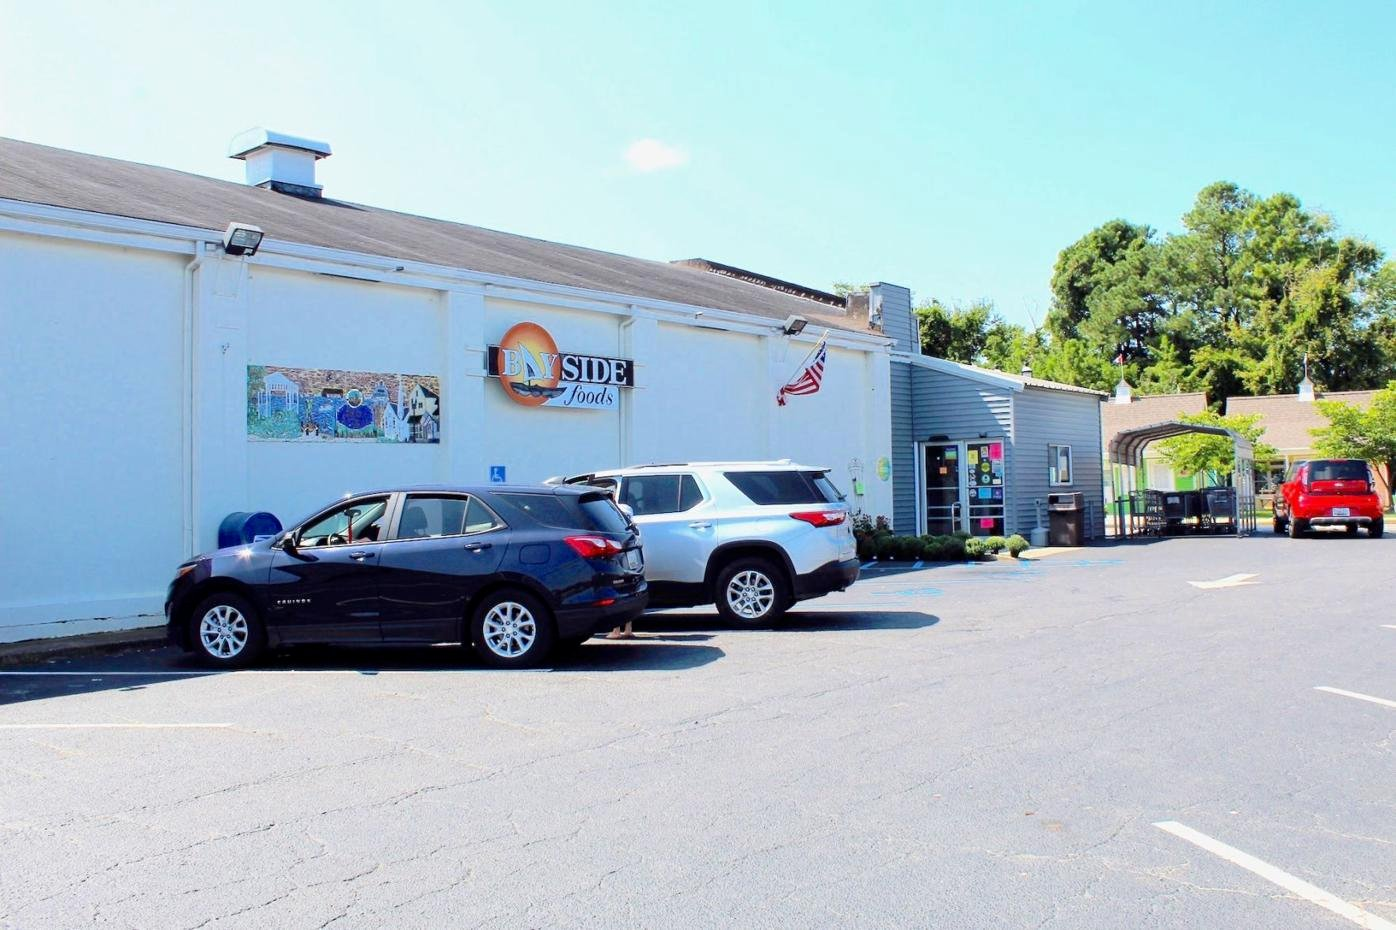 Bayside Foods listed for sale